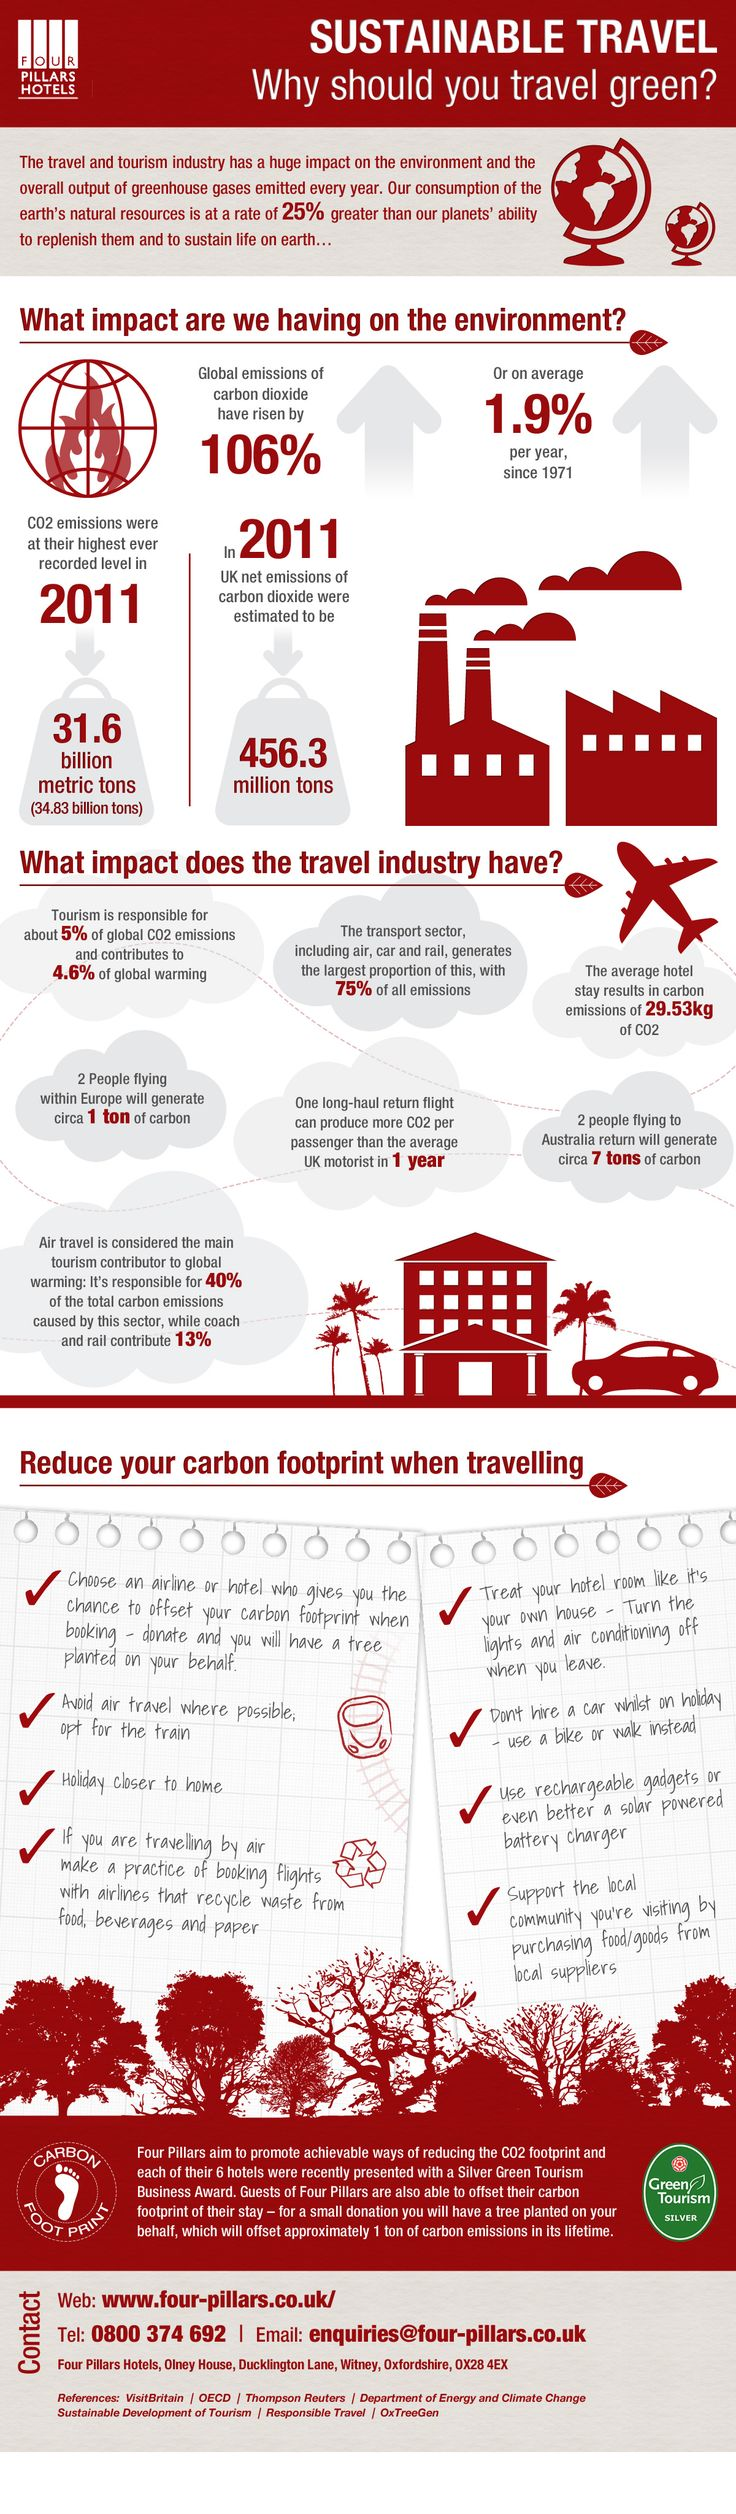 """Sustainable Travel"" infographic to investigate why indeed you should travel green, and how you can reduce your carbon footprint as you go."